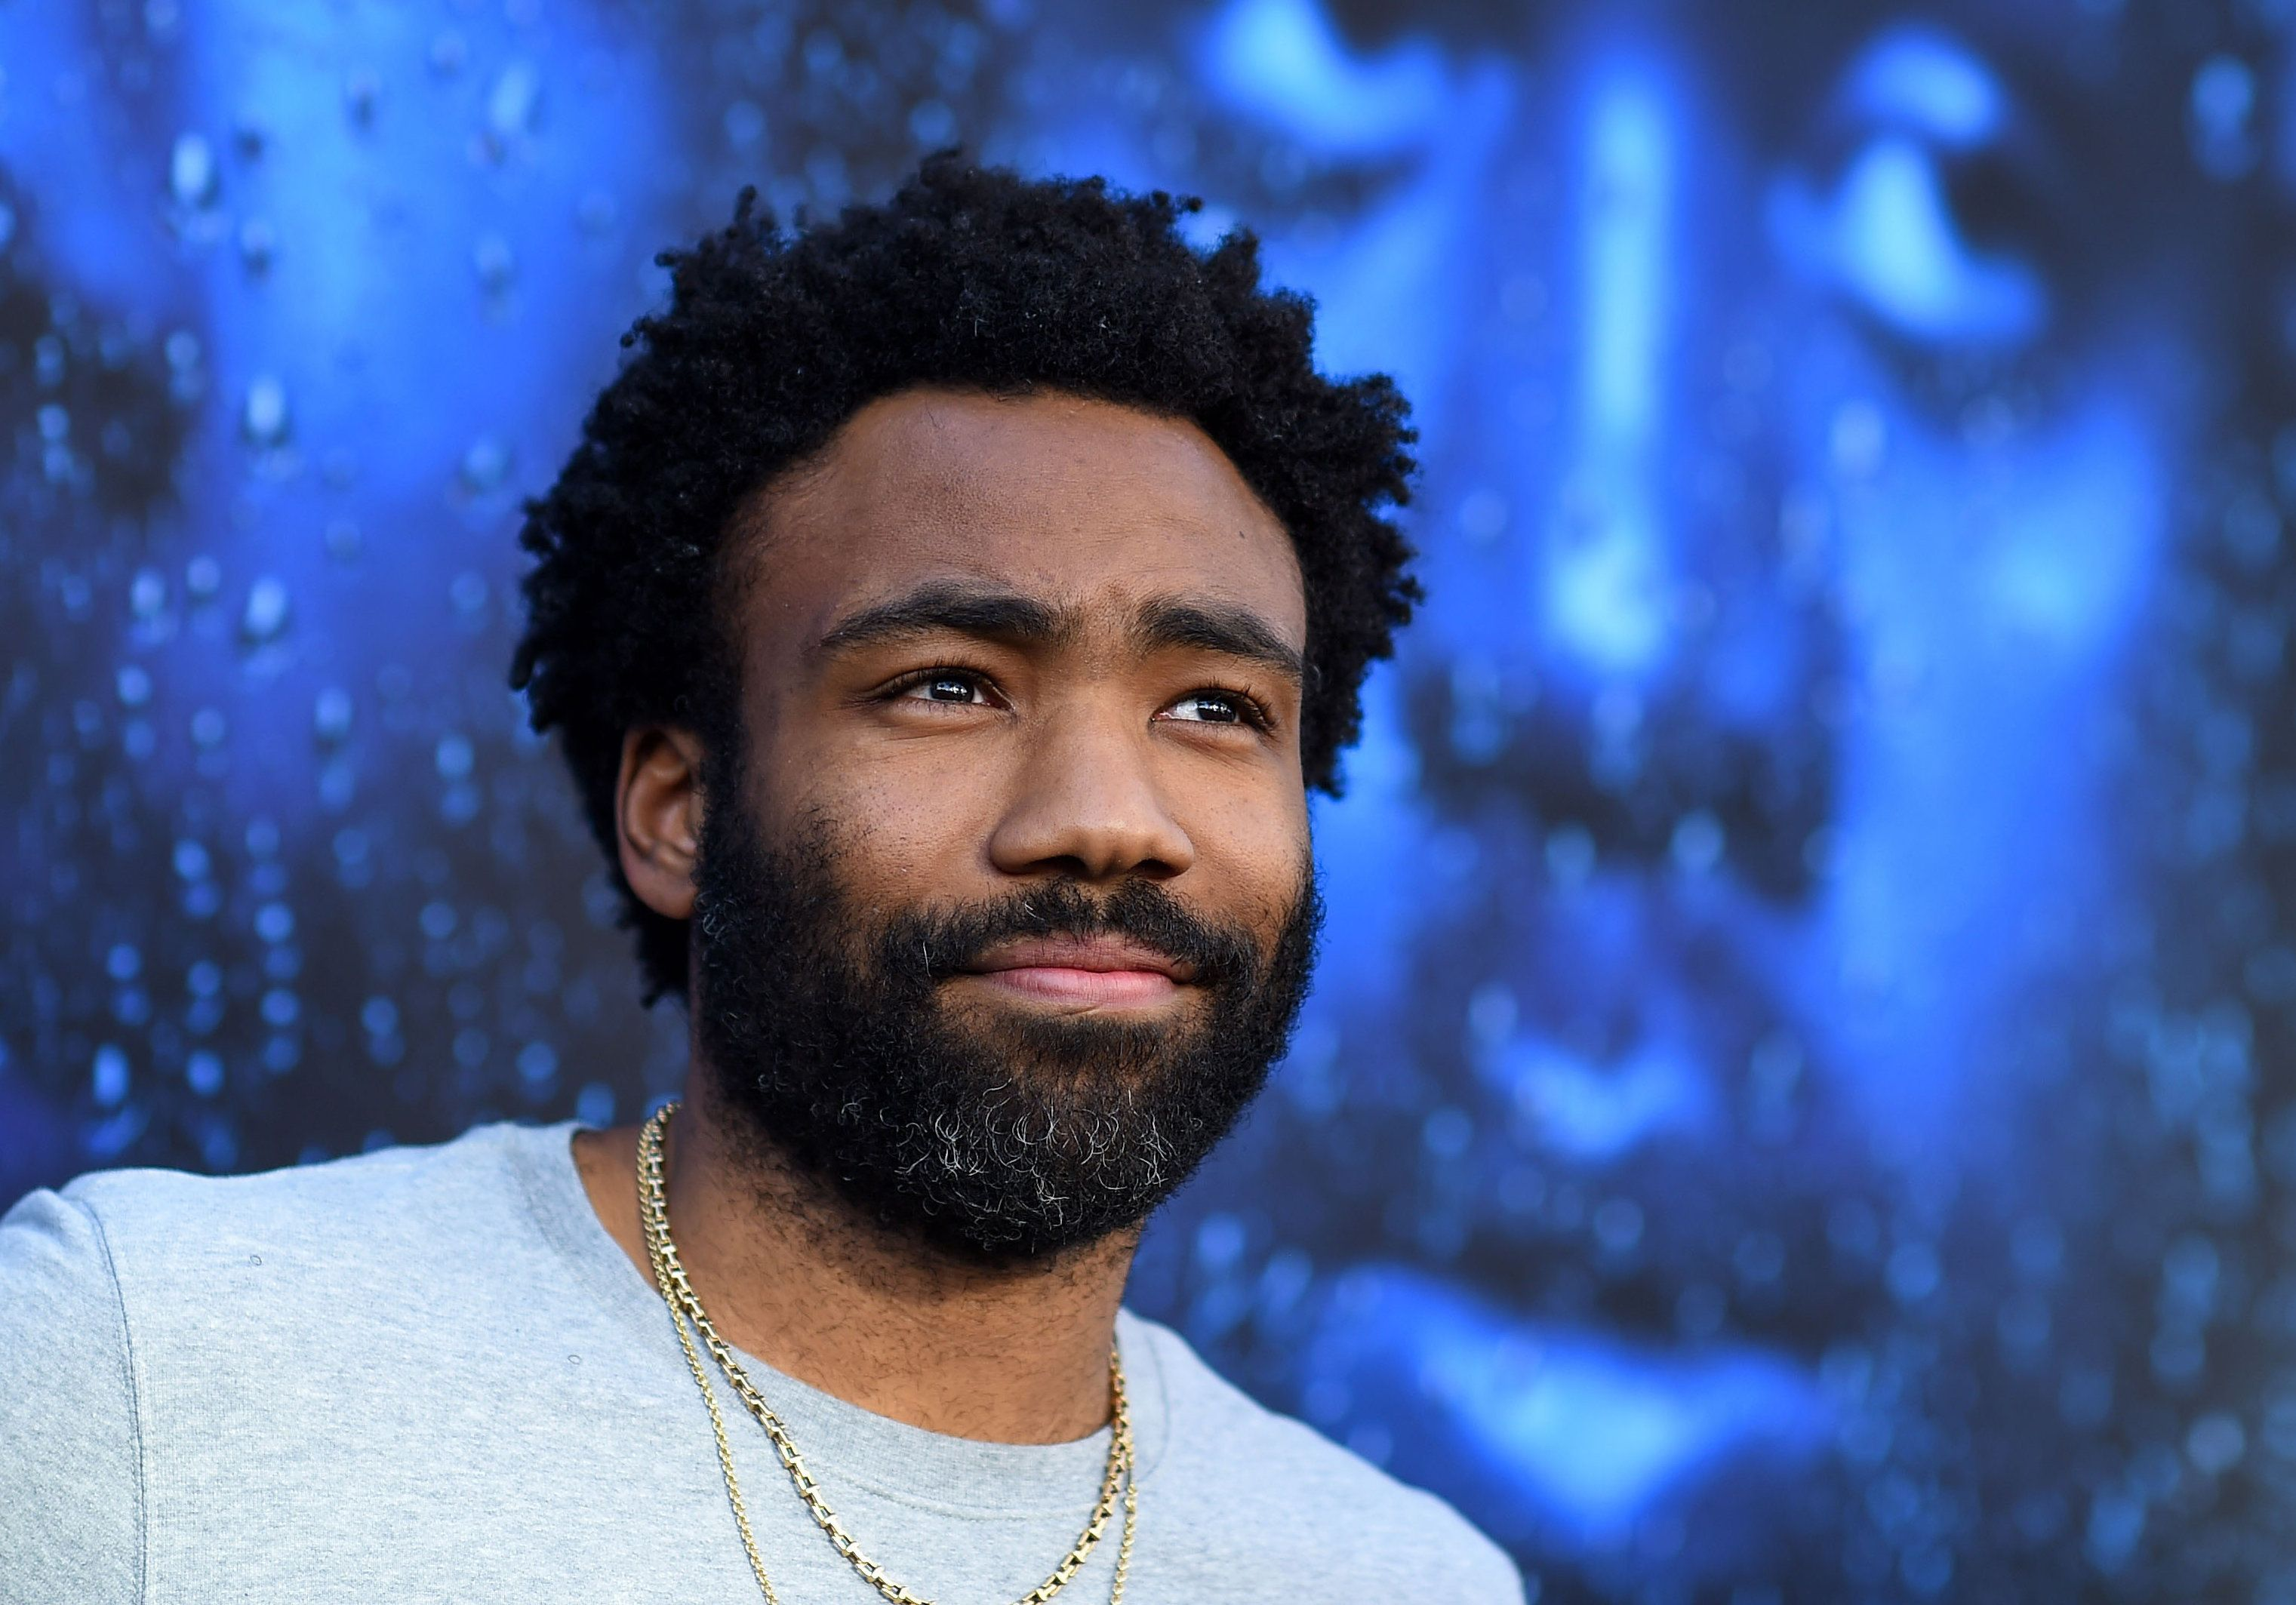 US Actor Donald Glover attends For Your Consideration Red Carpet Event For FX's Atlanta Robbin' Season,  at the Television Academy on June 8, 2018, in North Hollywood, California. (Photo by VALERIE MACON / AFP)        (Photo credit should read VALERIE MACON/AFP/Getty Images)